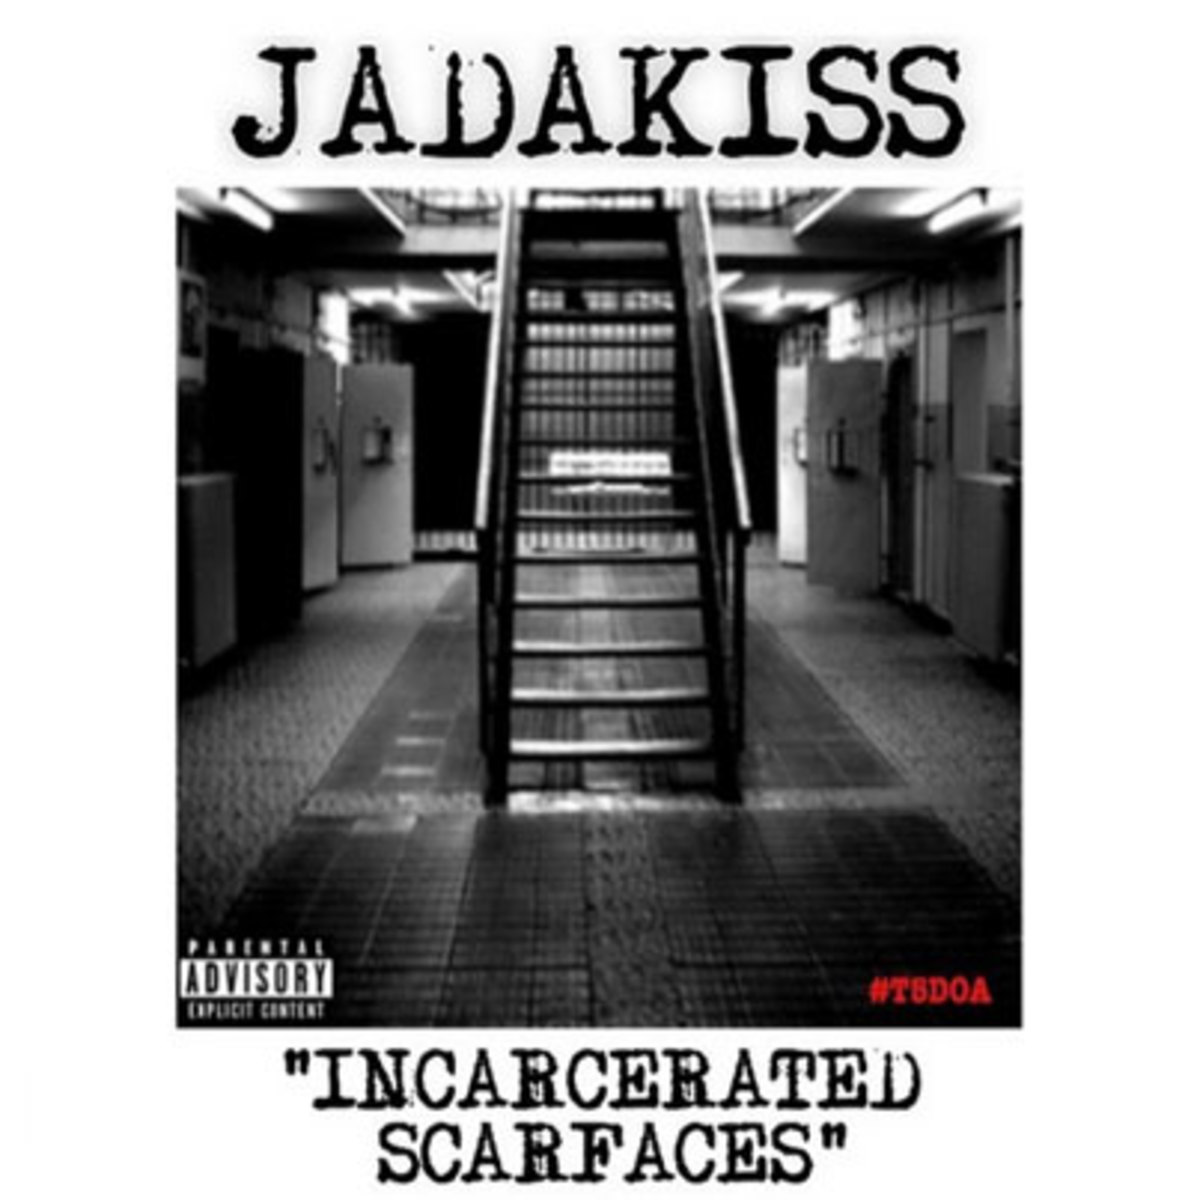 jadakiss-incarcerated-scarfaces.jpg